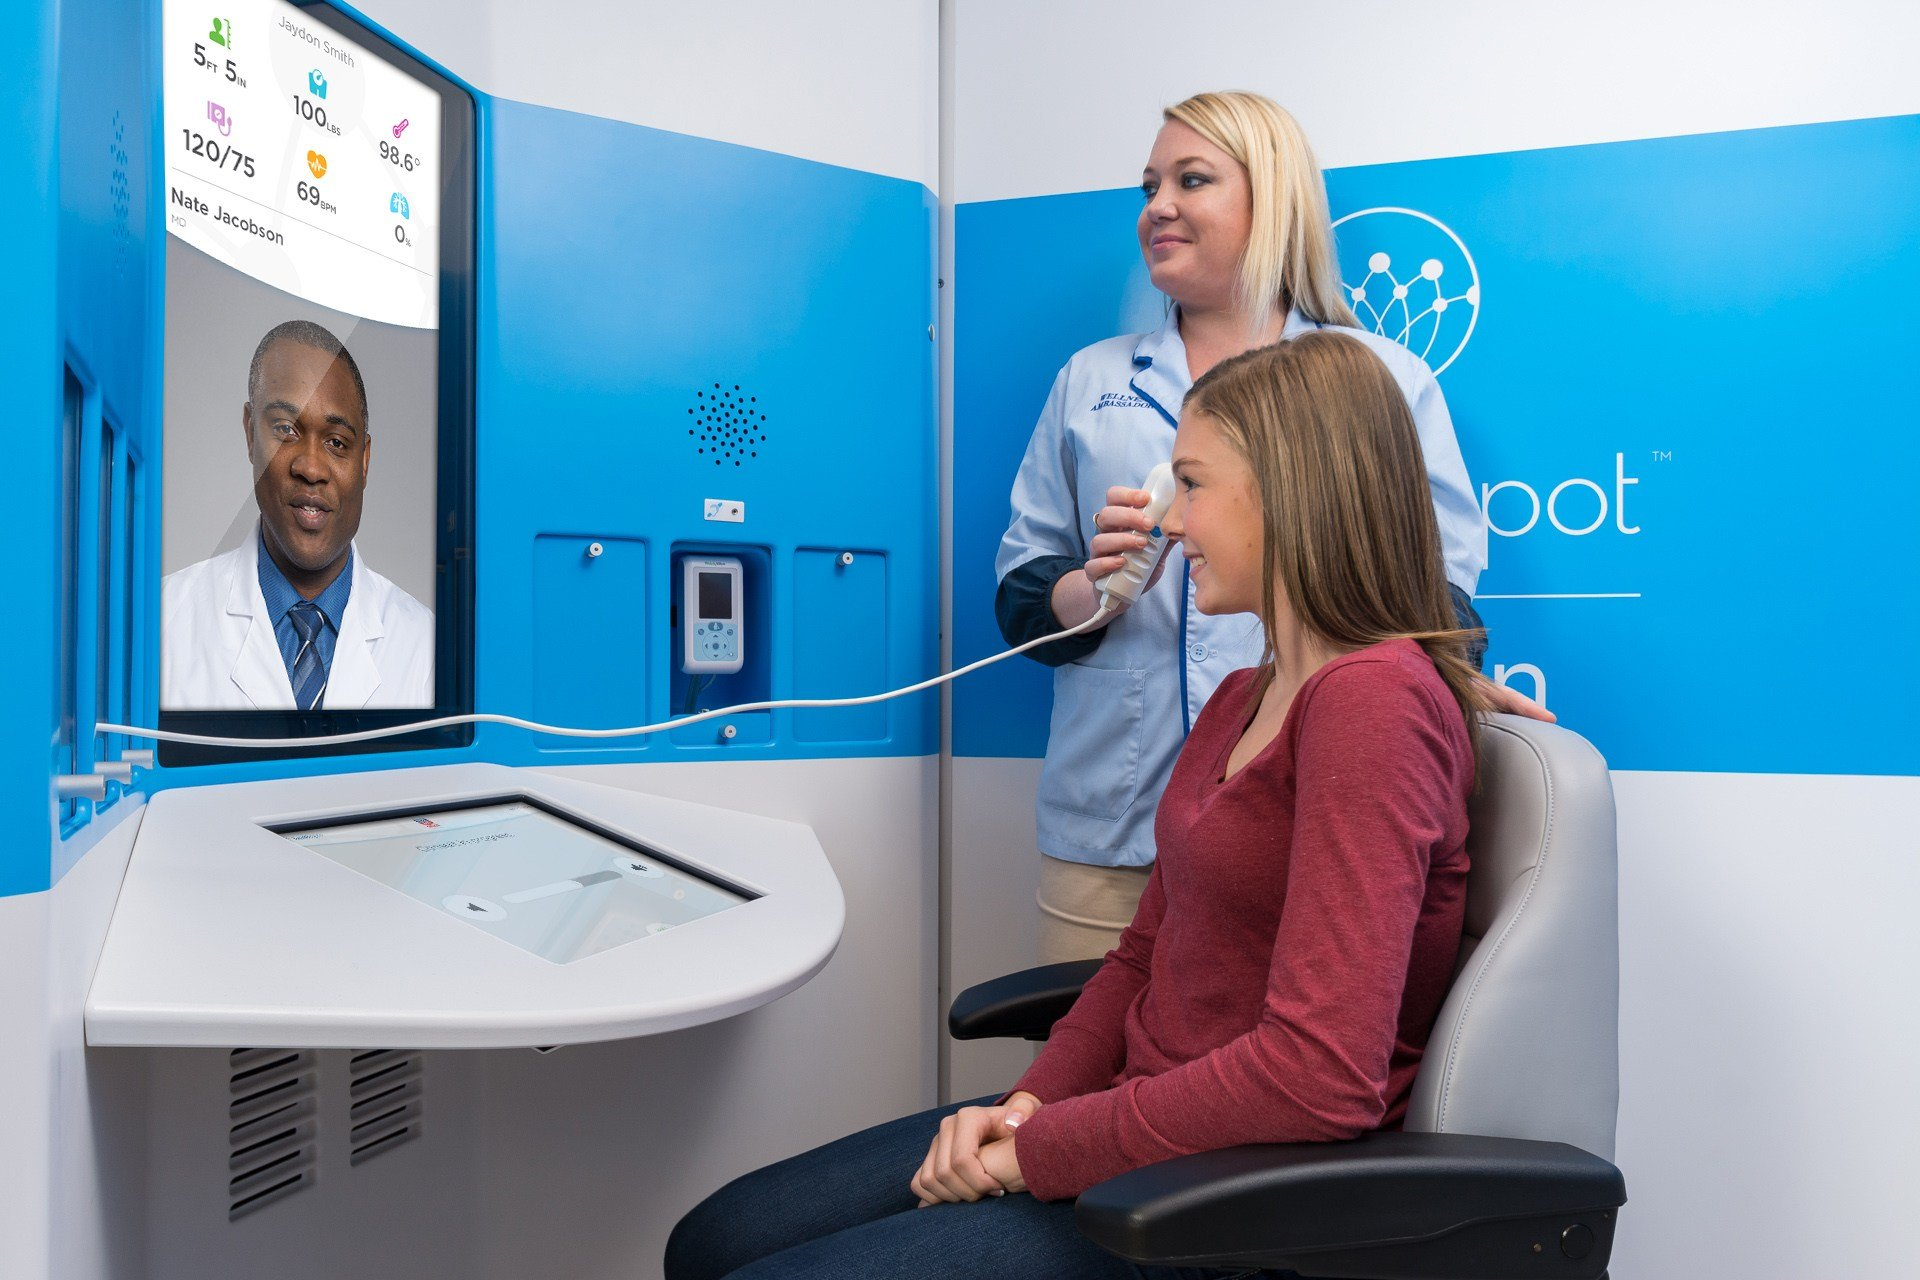 Telehealth Growth Strong for 2017 in Most Wired Hospitals